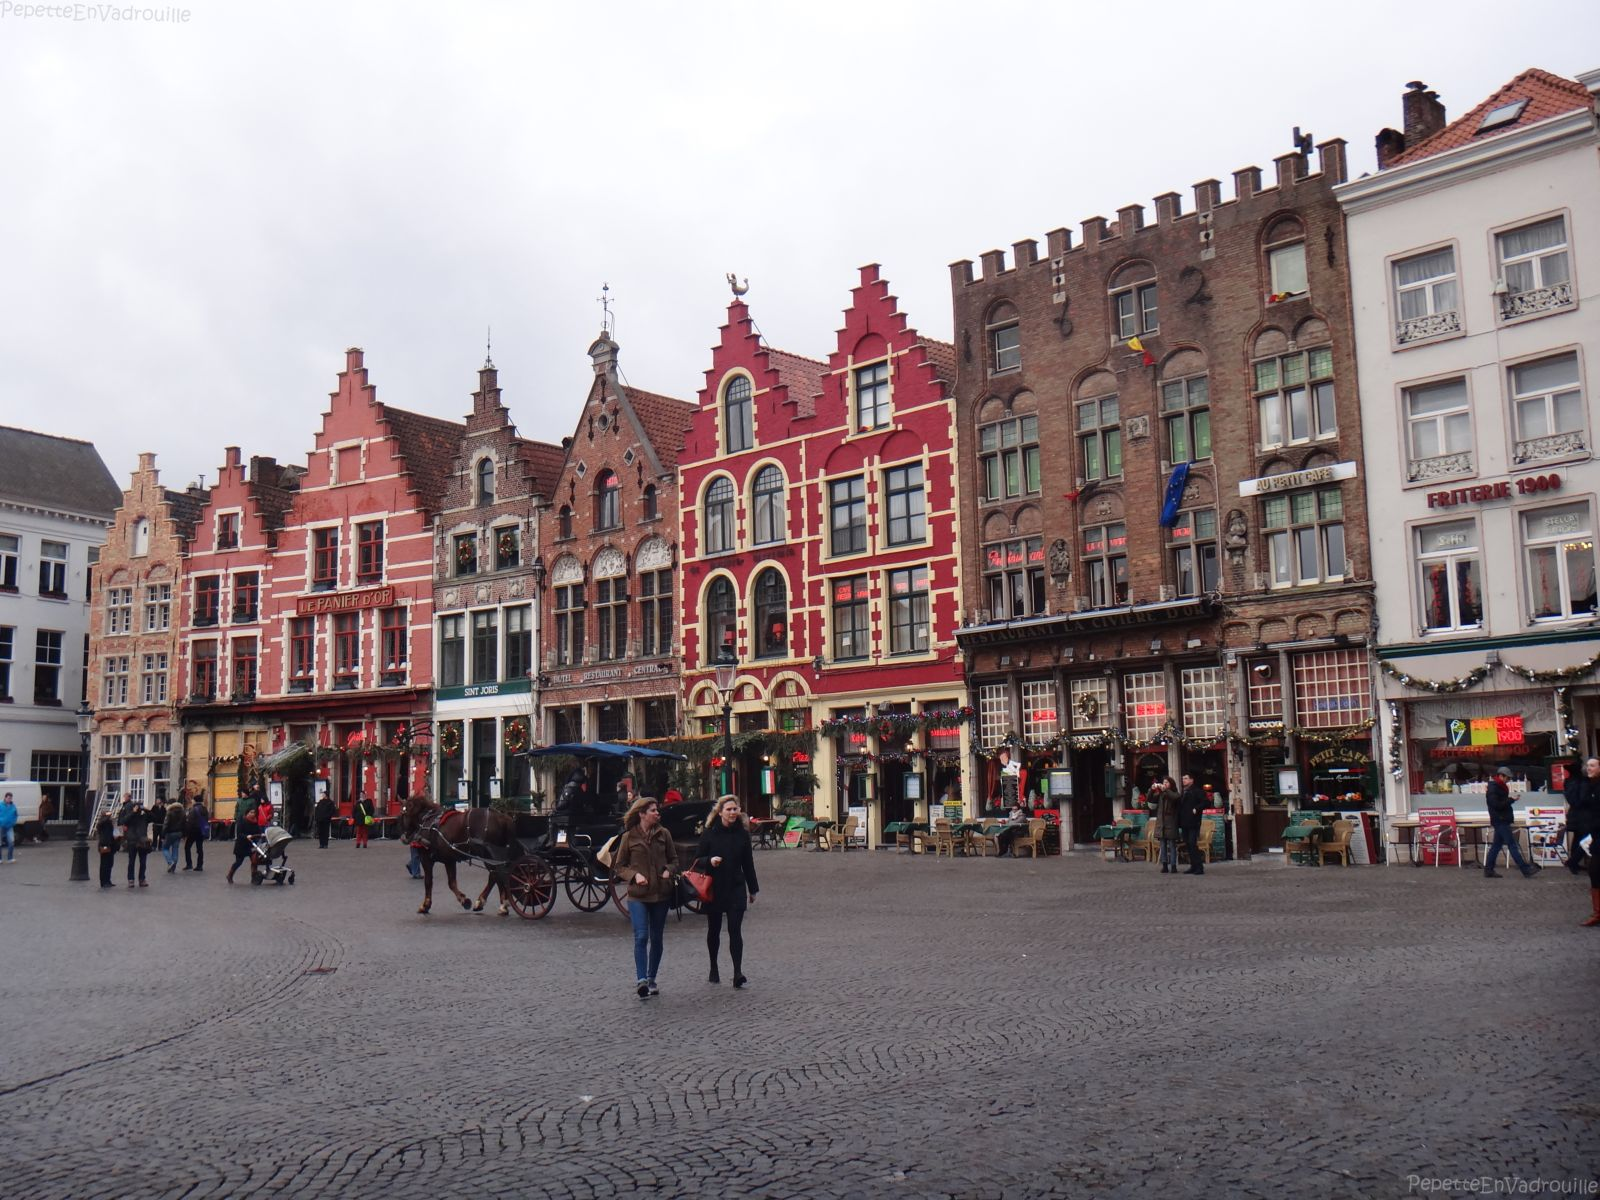 Une journ    e      Bruges   PepetteEnVadrouille Place Market